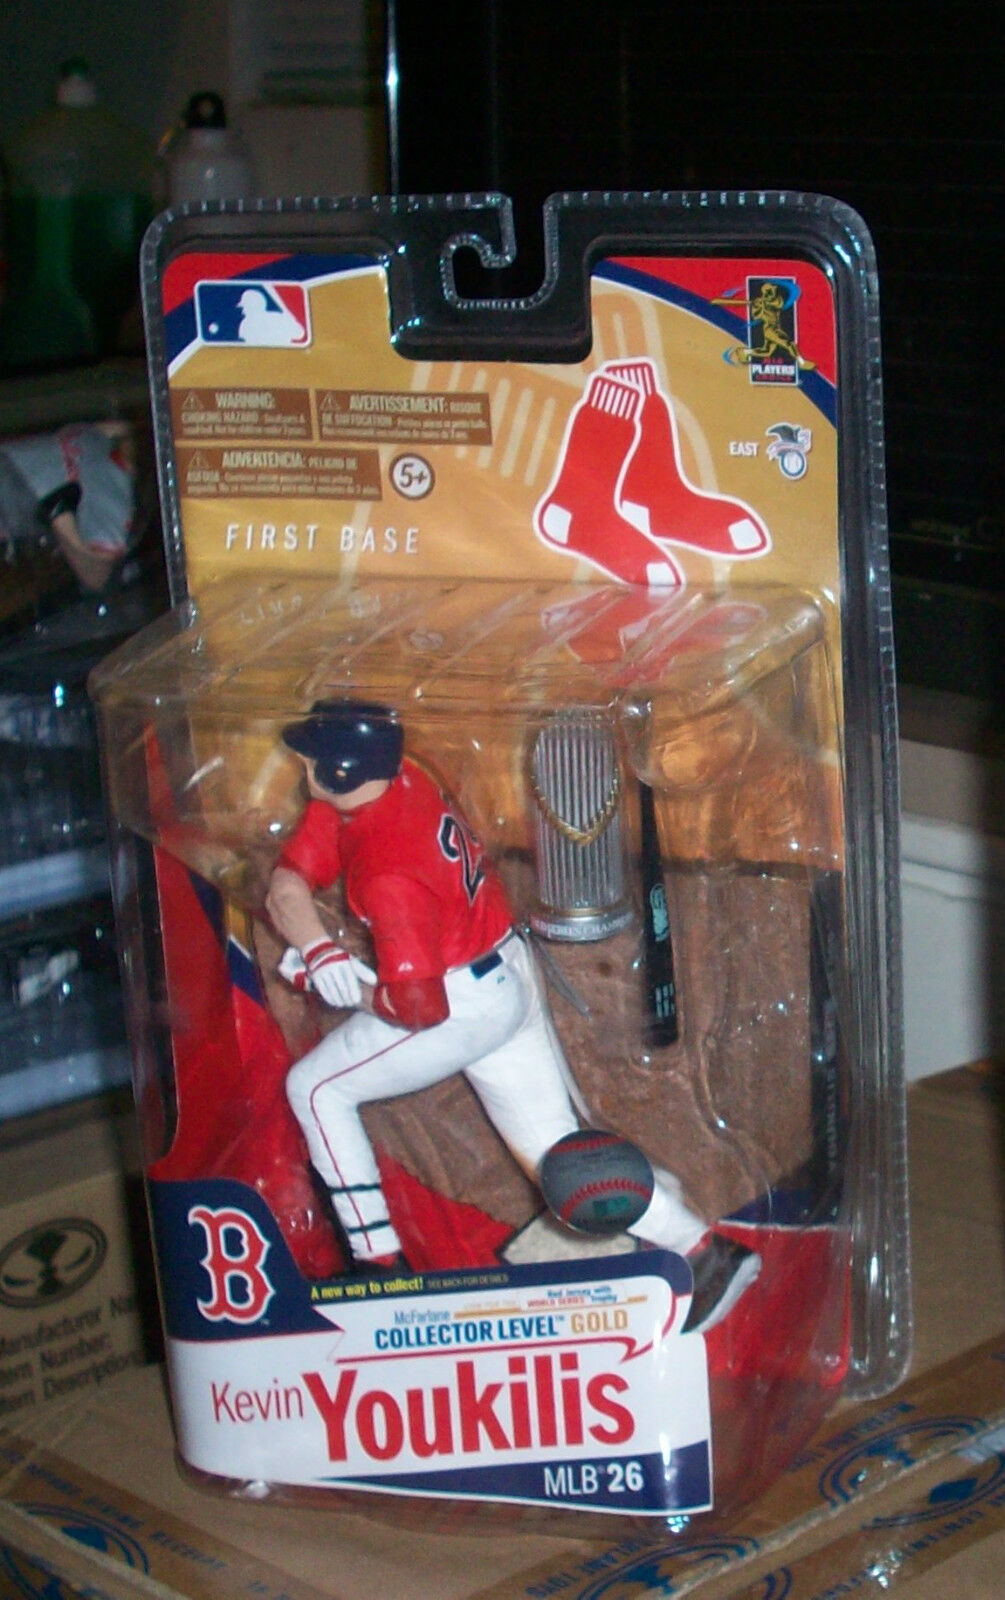 McFARLANE MLB 26 KEVIN YOUKILIS ROT SOX COLLECTORS LEVEL CL VARIANT CHASE FIGURE